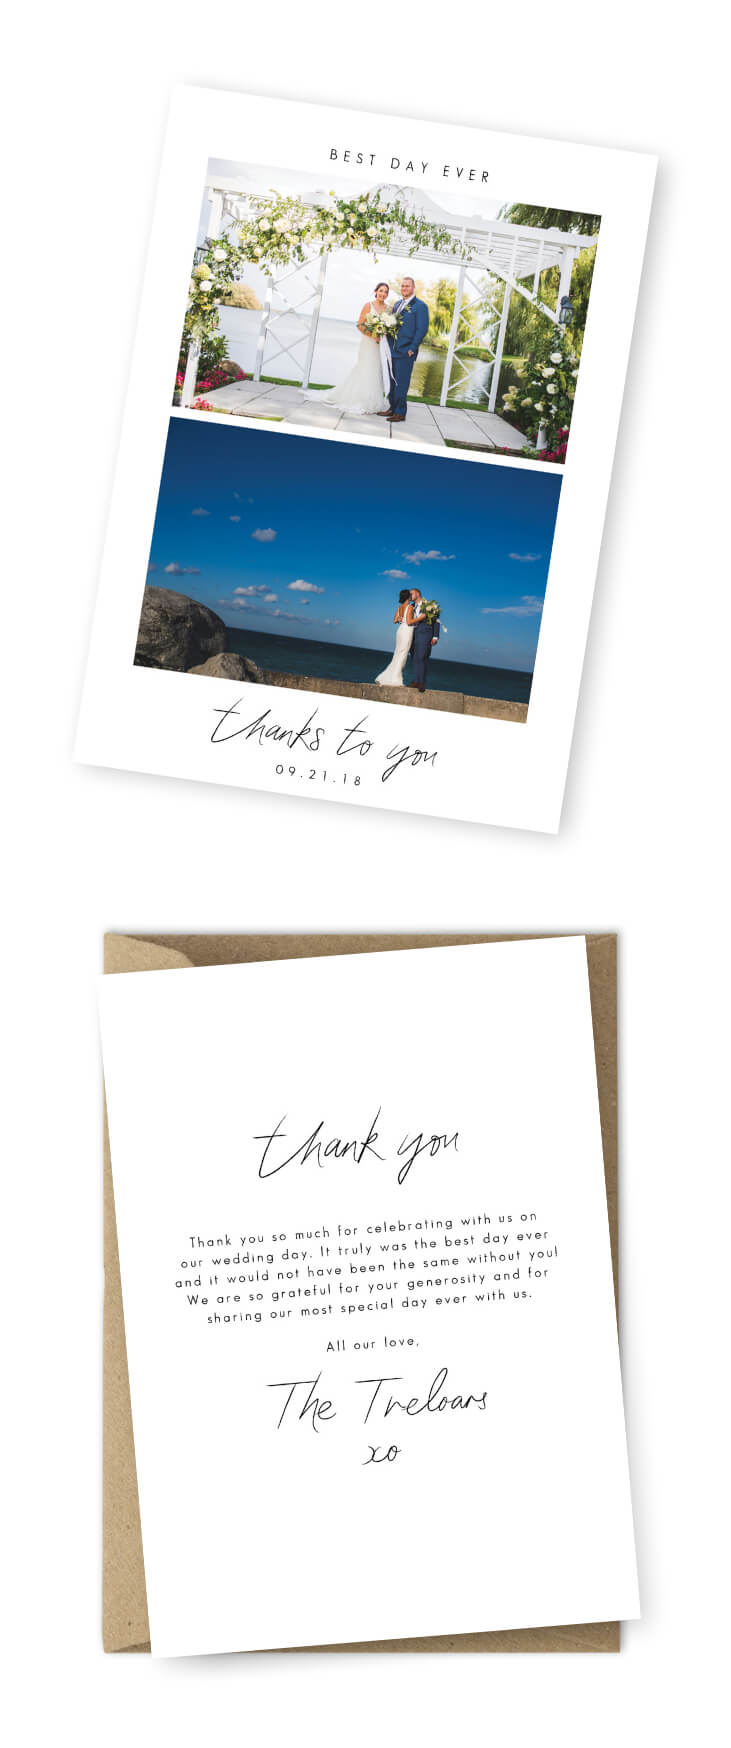 10 Wording Examples For Your Wedding Thank You Cards Within Template For Wedding Thank You Cards